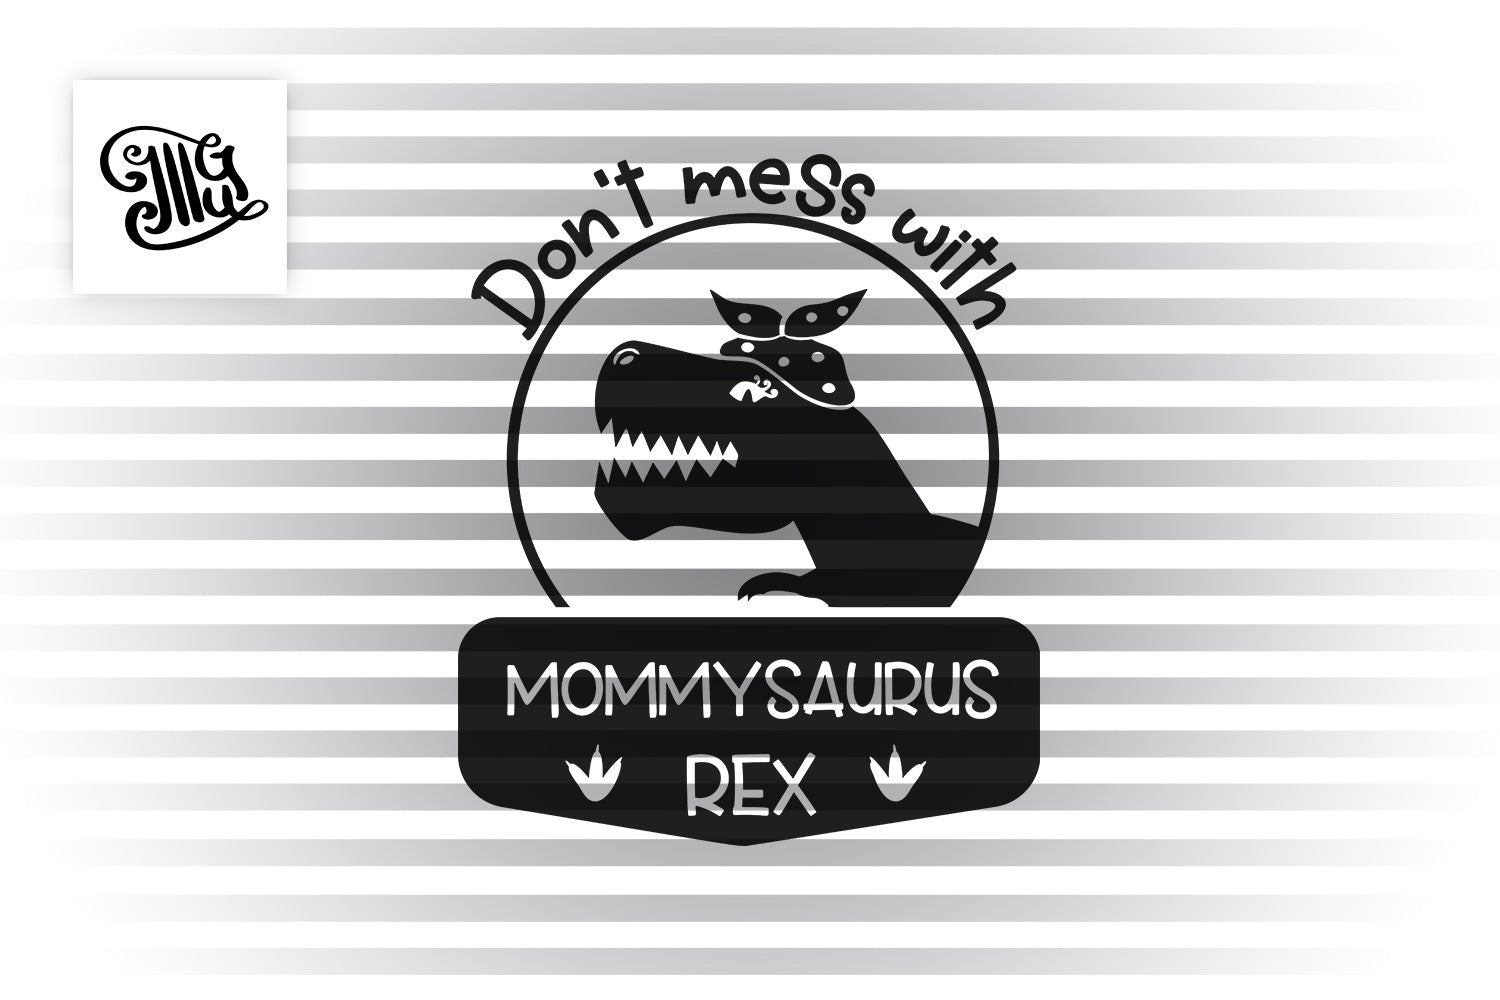 Dont Mess with Mommysaurus Rex SVG | Mommysaurus SVG | Dinosaur mom with bandana SVG | Mom svg | Mothers Day svg-by Illustrator Guru